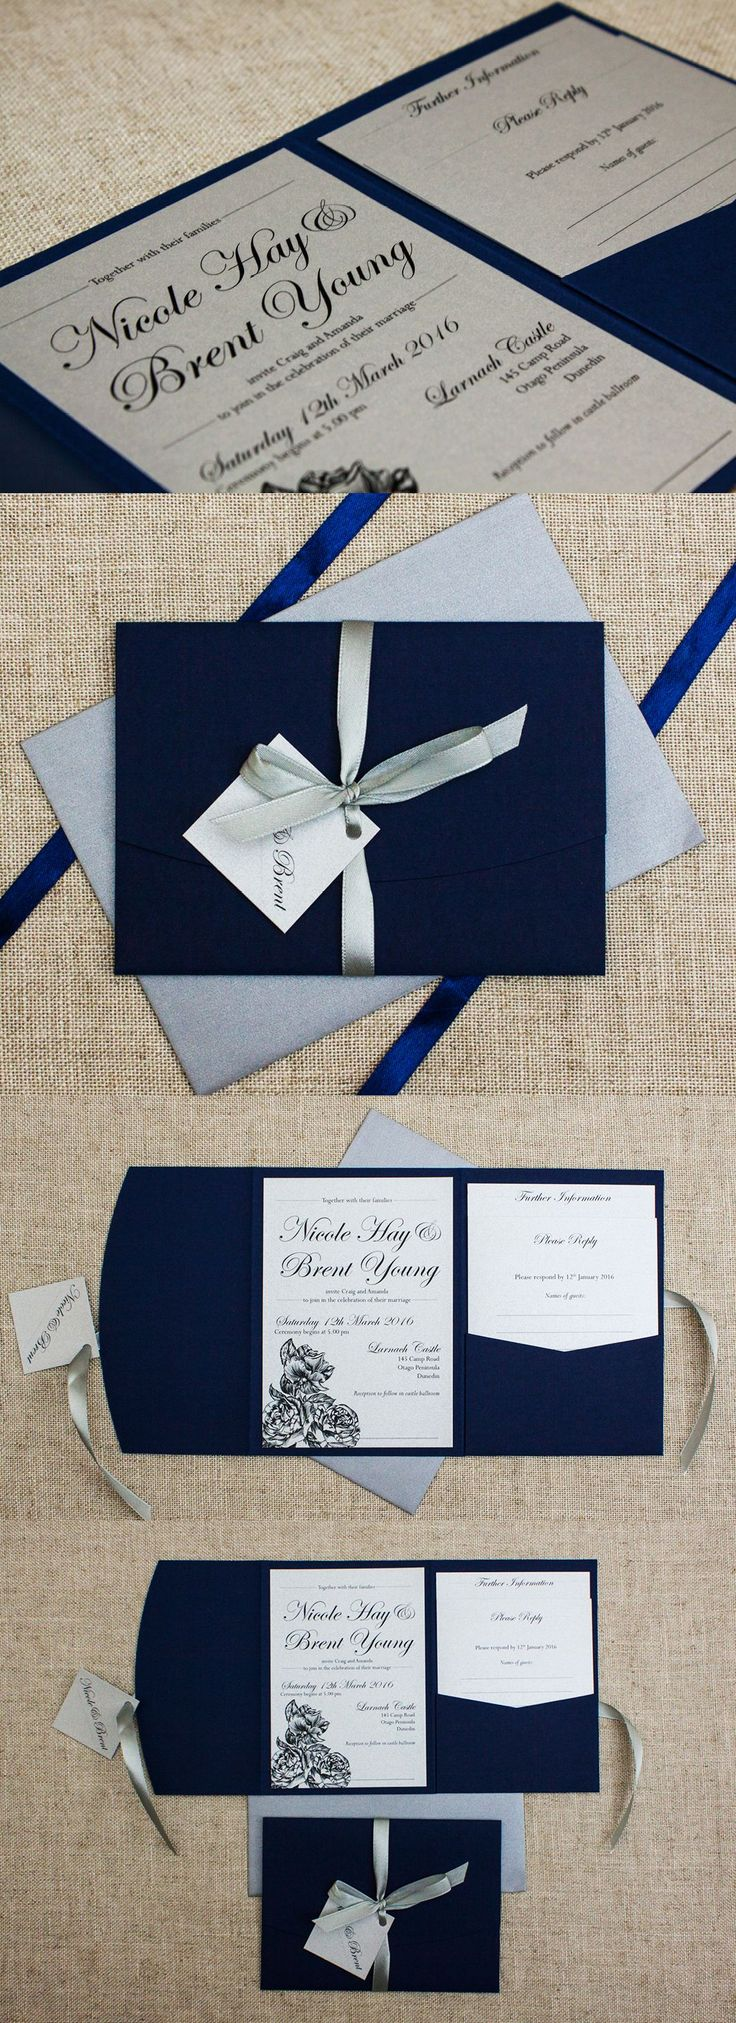 marriage invitation sms on mobile%0A Rustic Etched Roses Pocketfold Wedding Invitation  Be My Guest